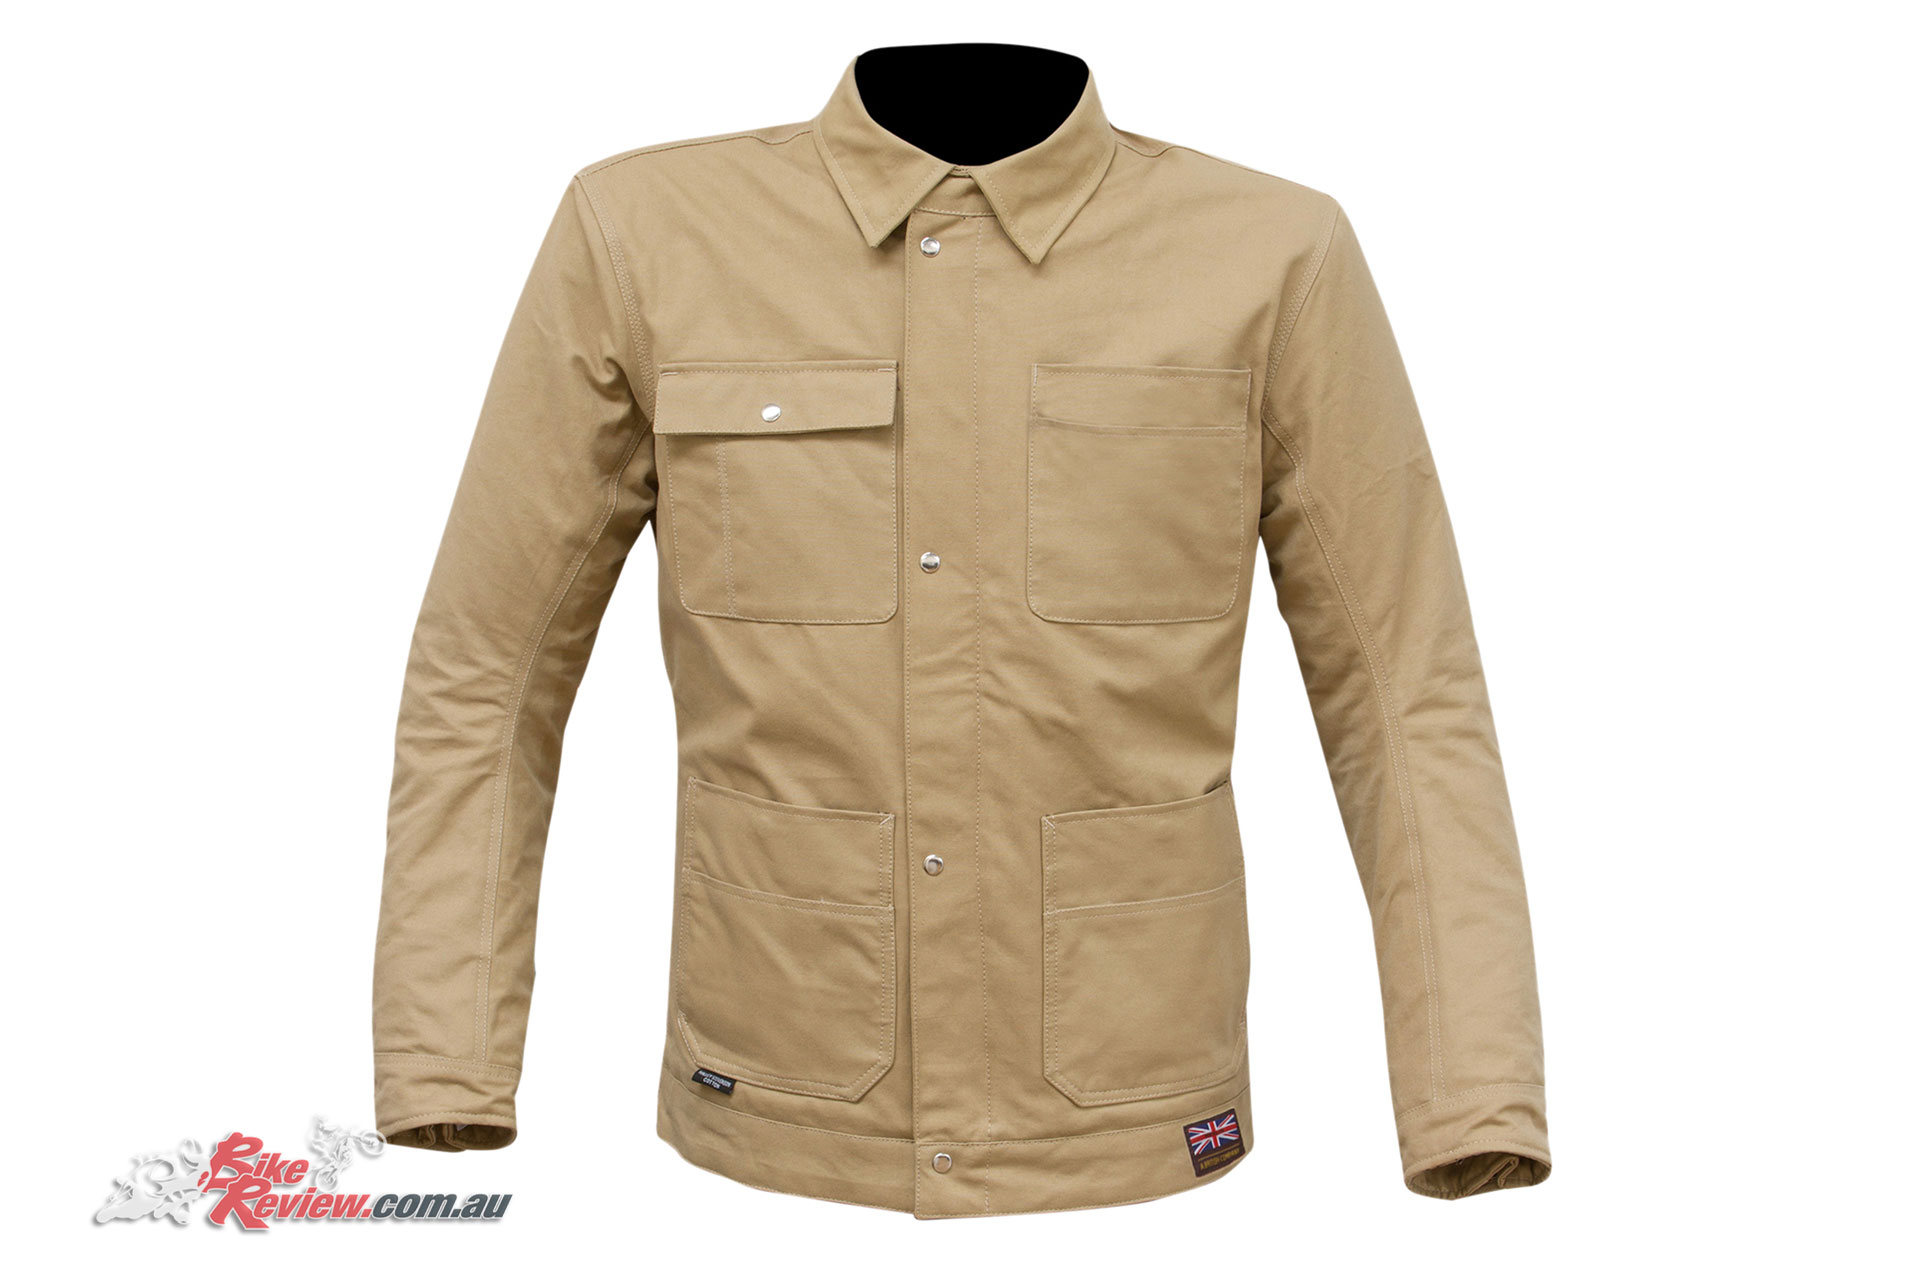 Merlin Victory Jacket - Tan